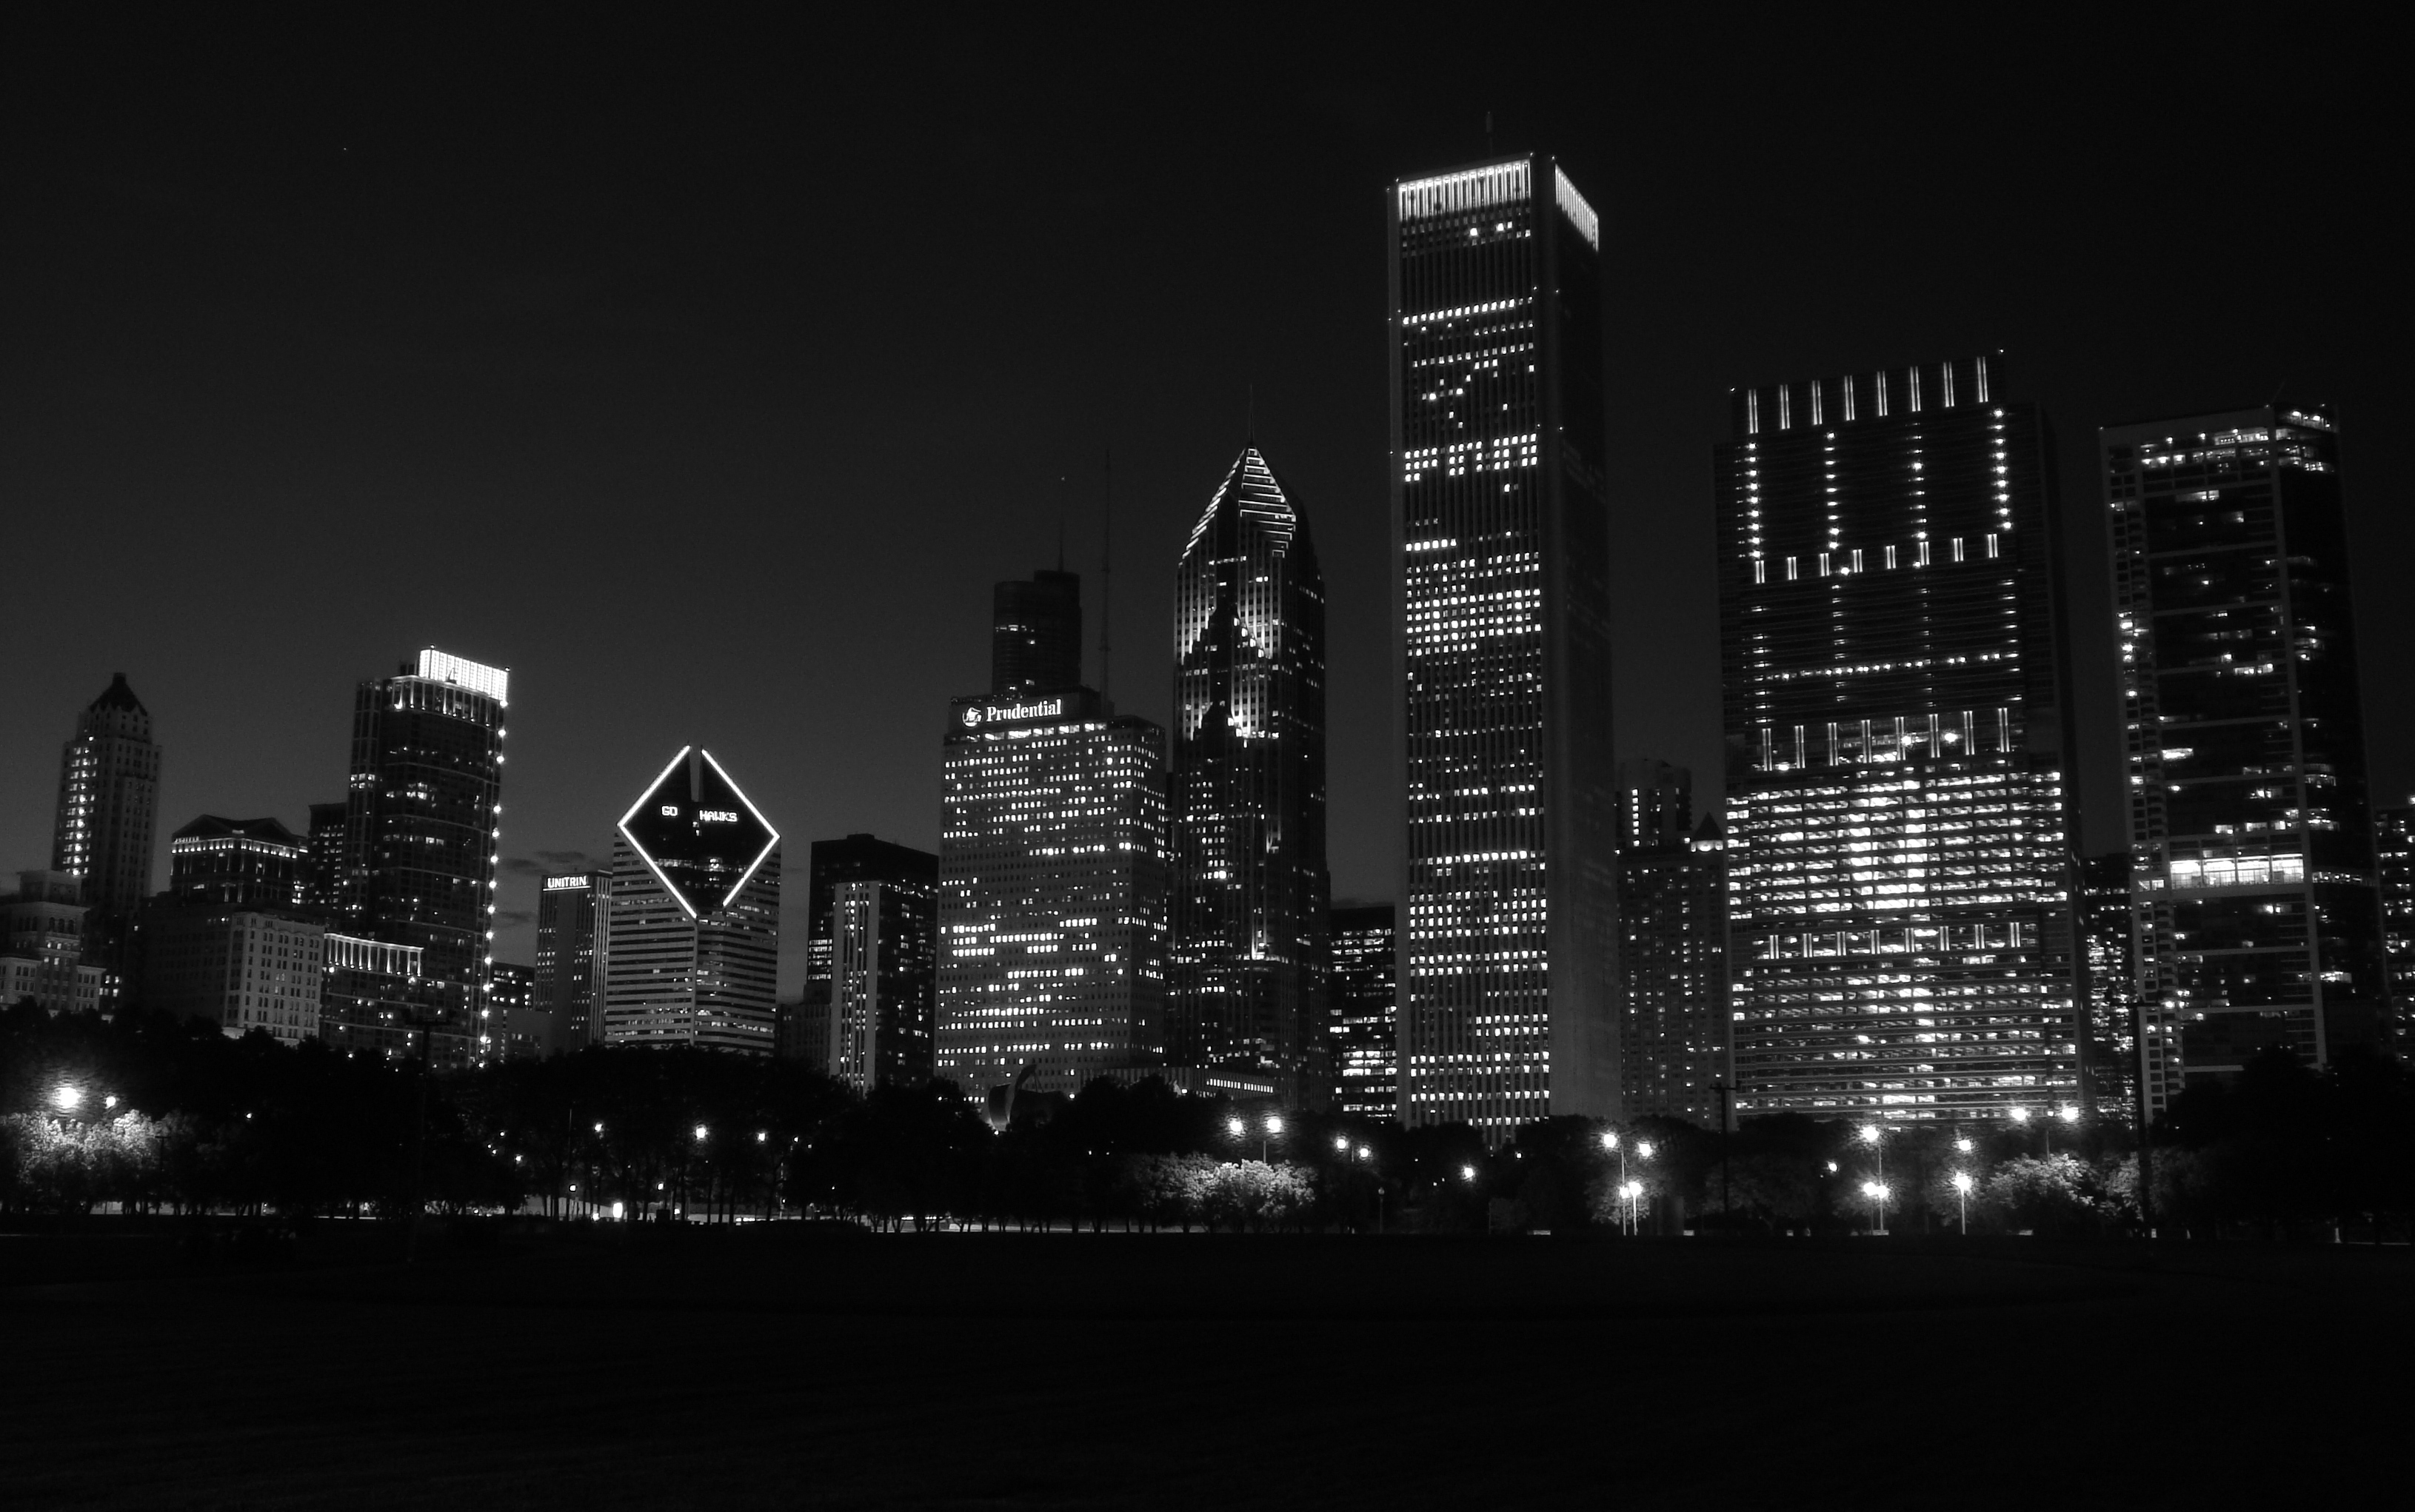 cityscapes night cities